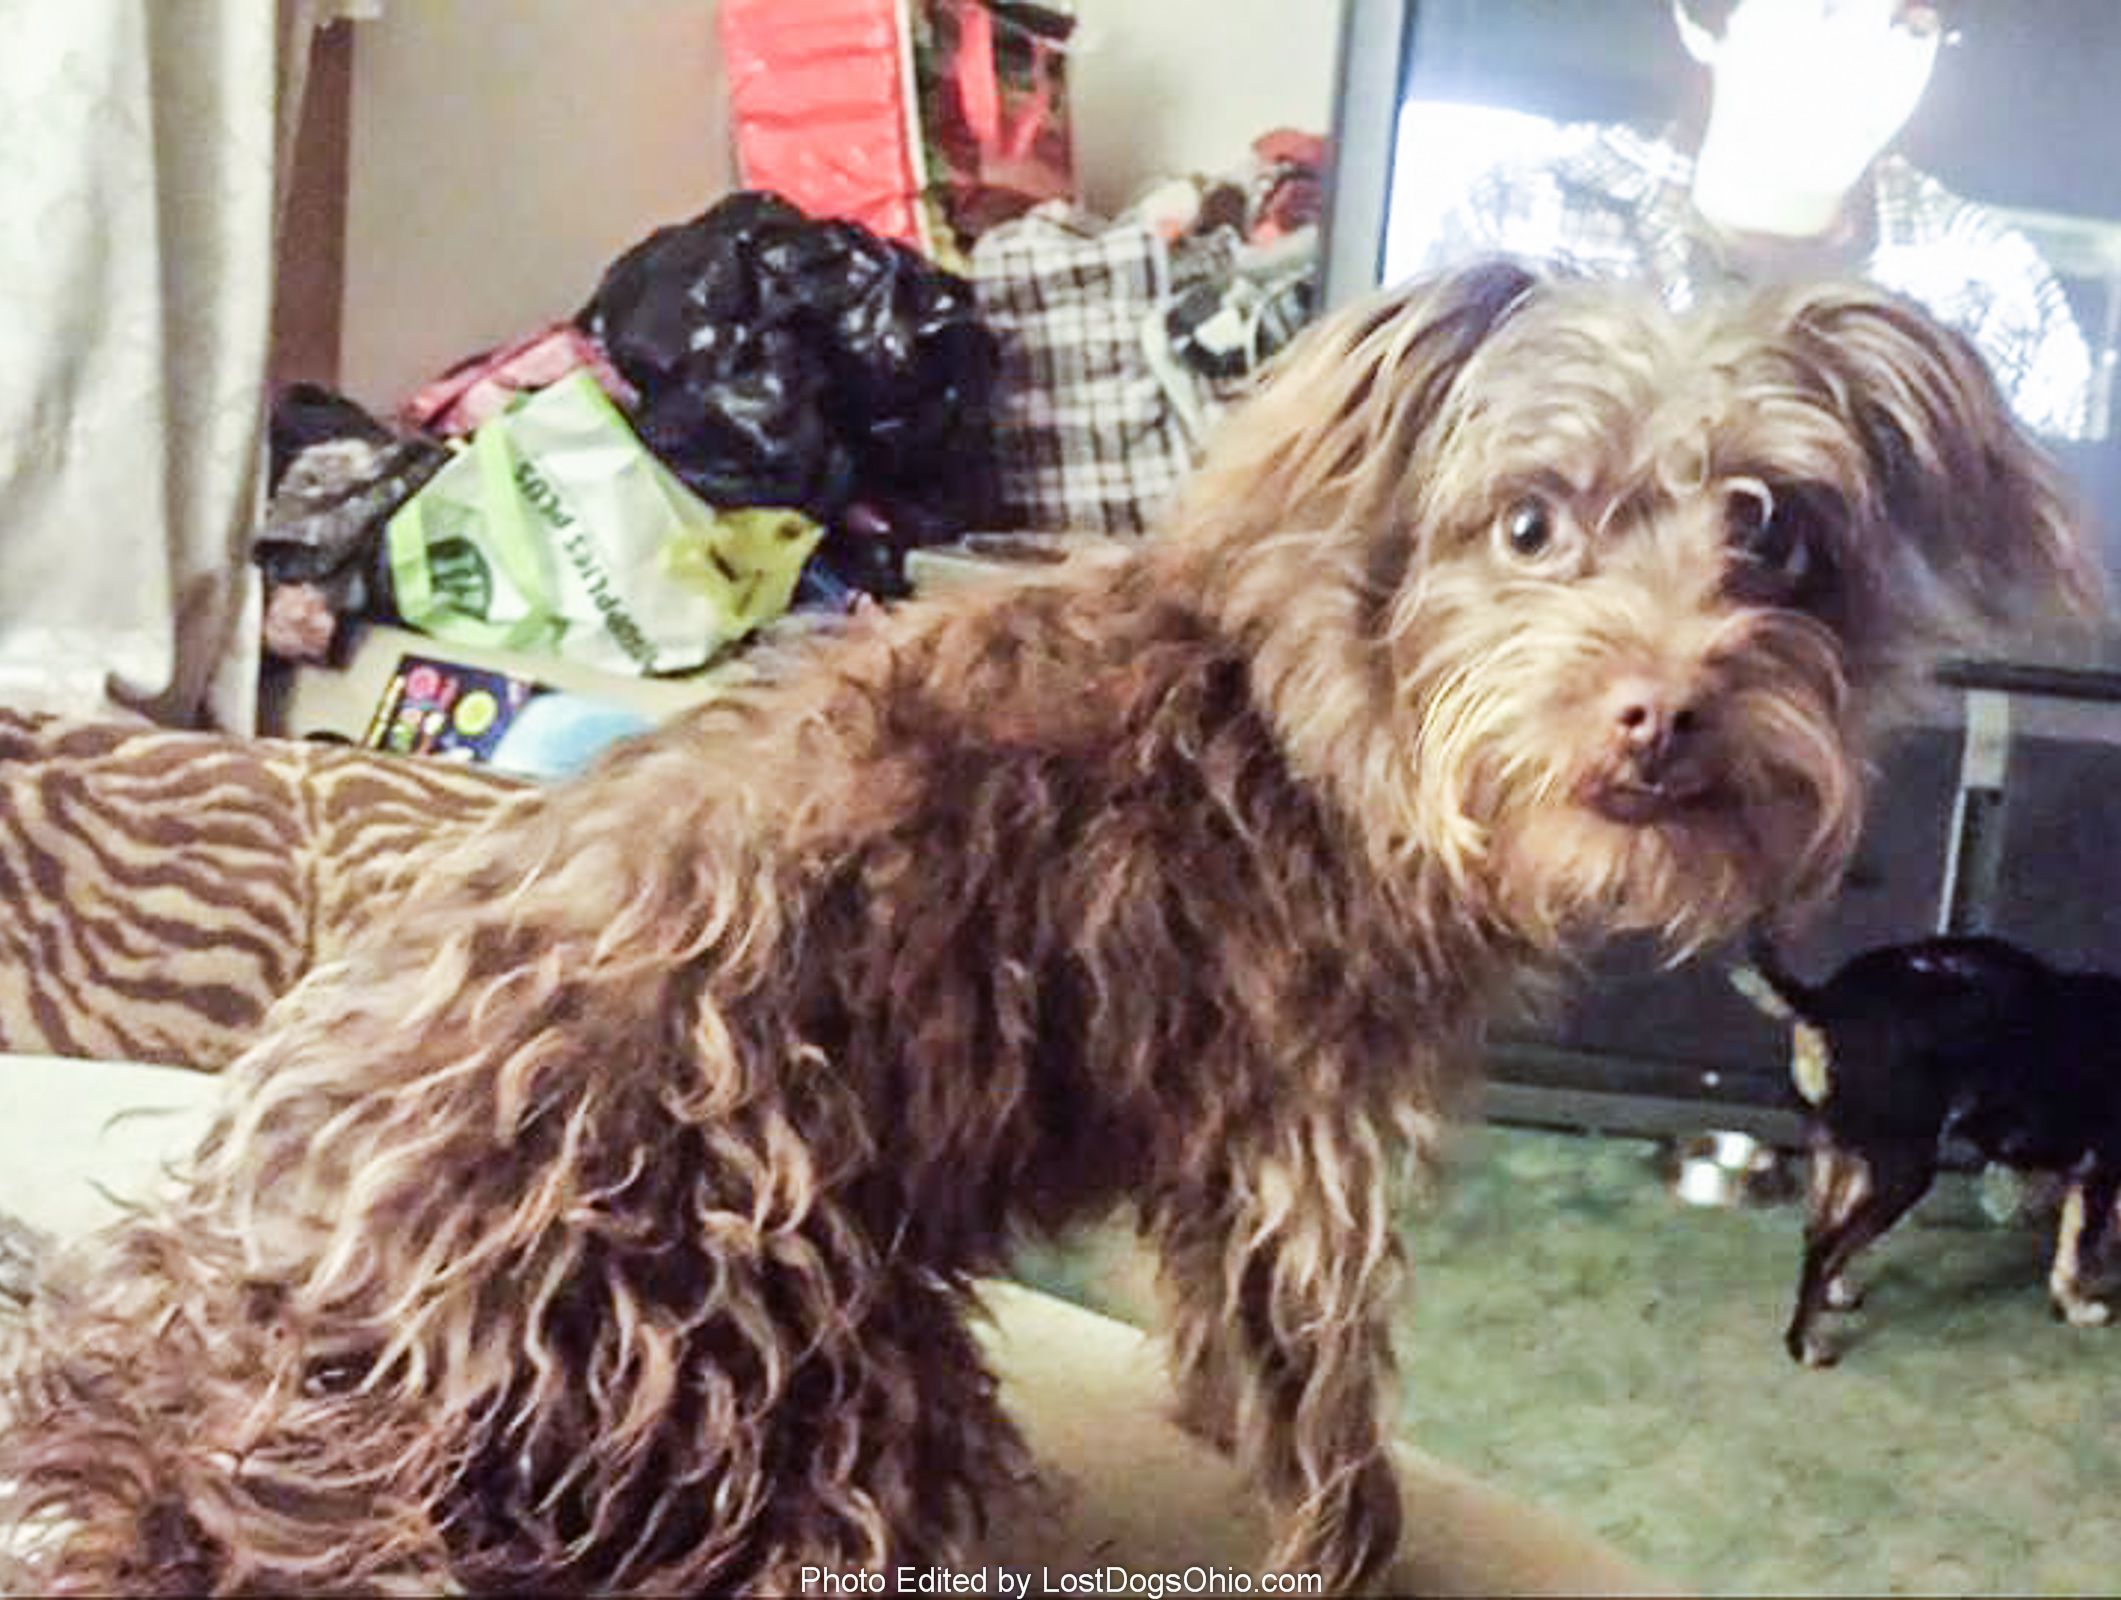 Back Home Dog Chihuahua Long Haired Sebring Oh Usa 44672 Losing A Dog Dogs Pet Home